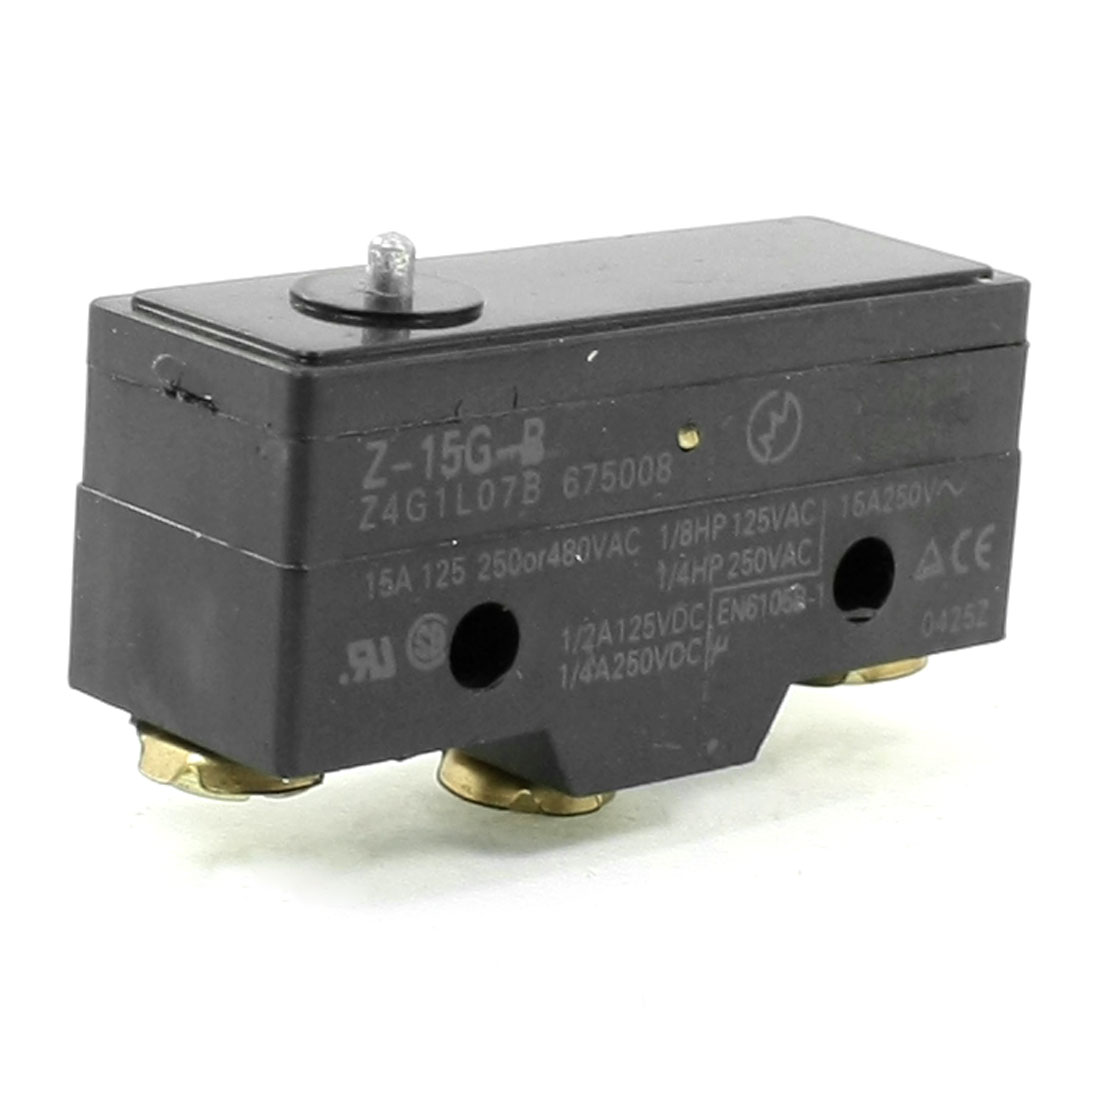 Z-15G-B 3 Screw Terminals Short Push Plunger Basic Micro Limit Switch